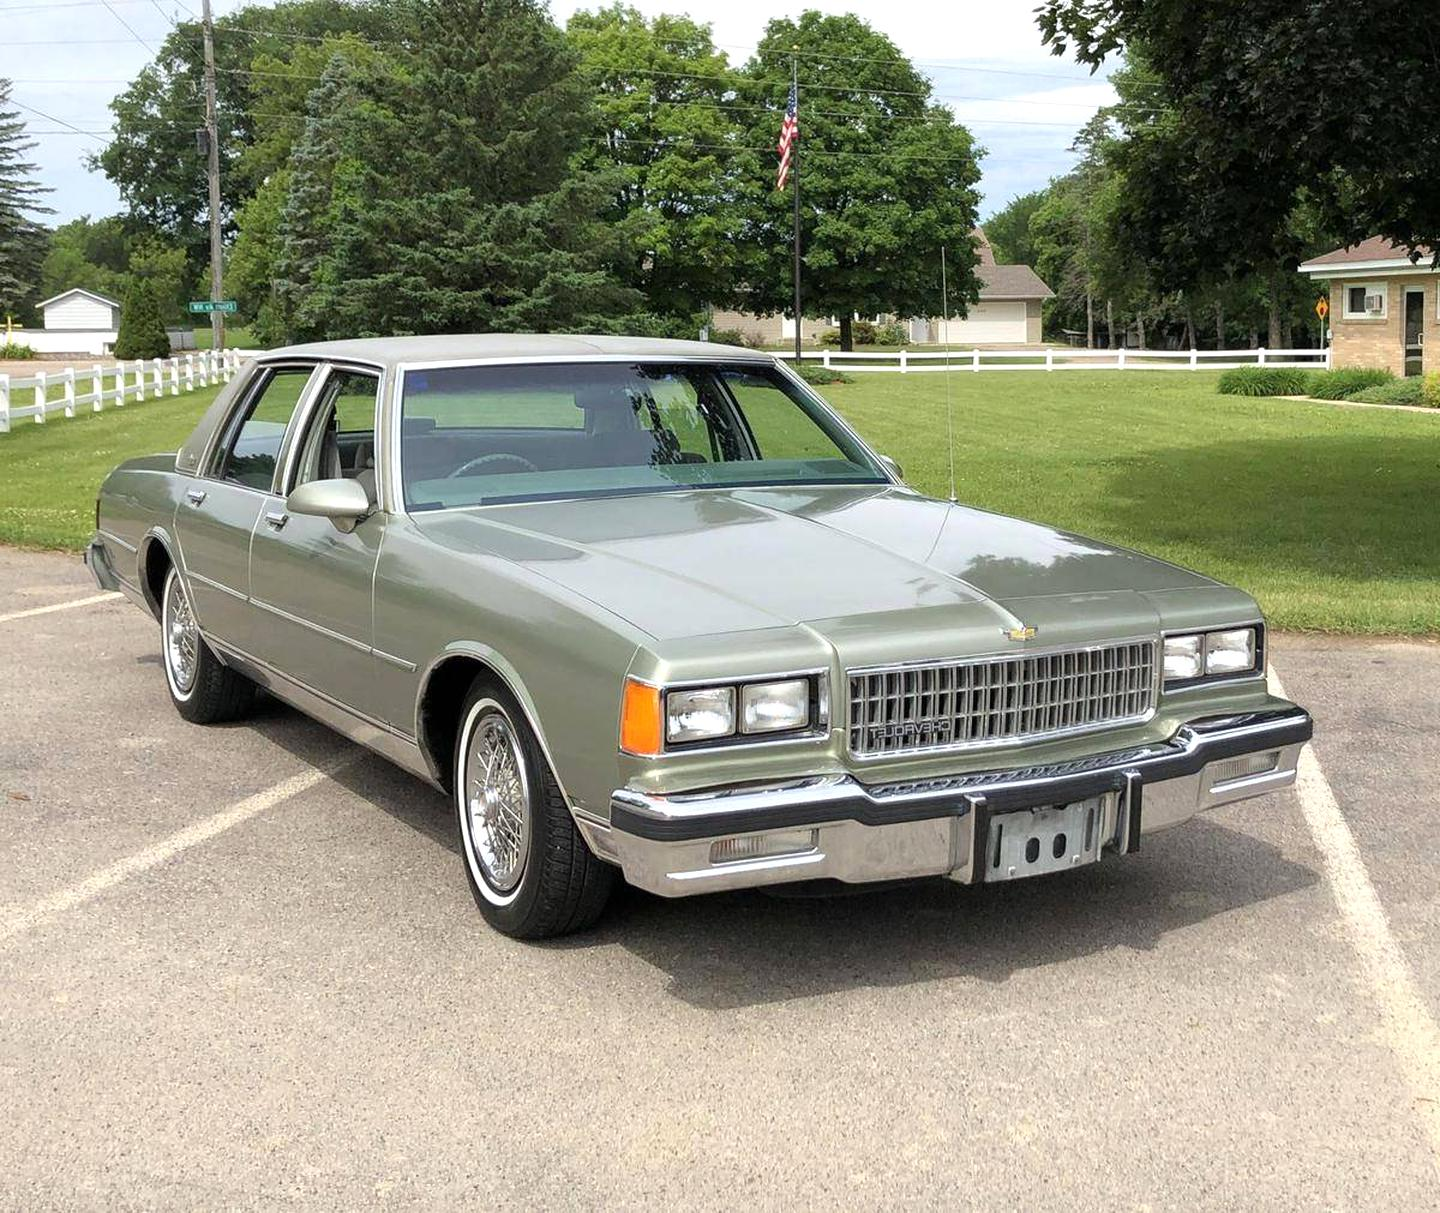 chevy caprice for sale compared to craigslist only 3 left at 65 chevy caprice for sale compared to